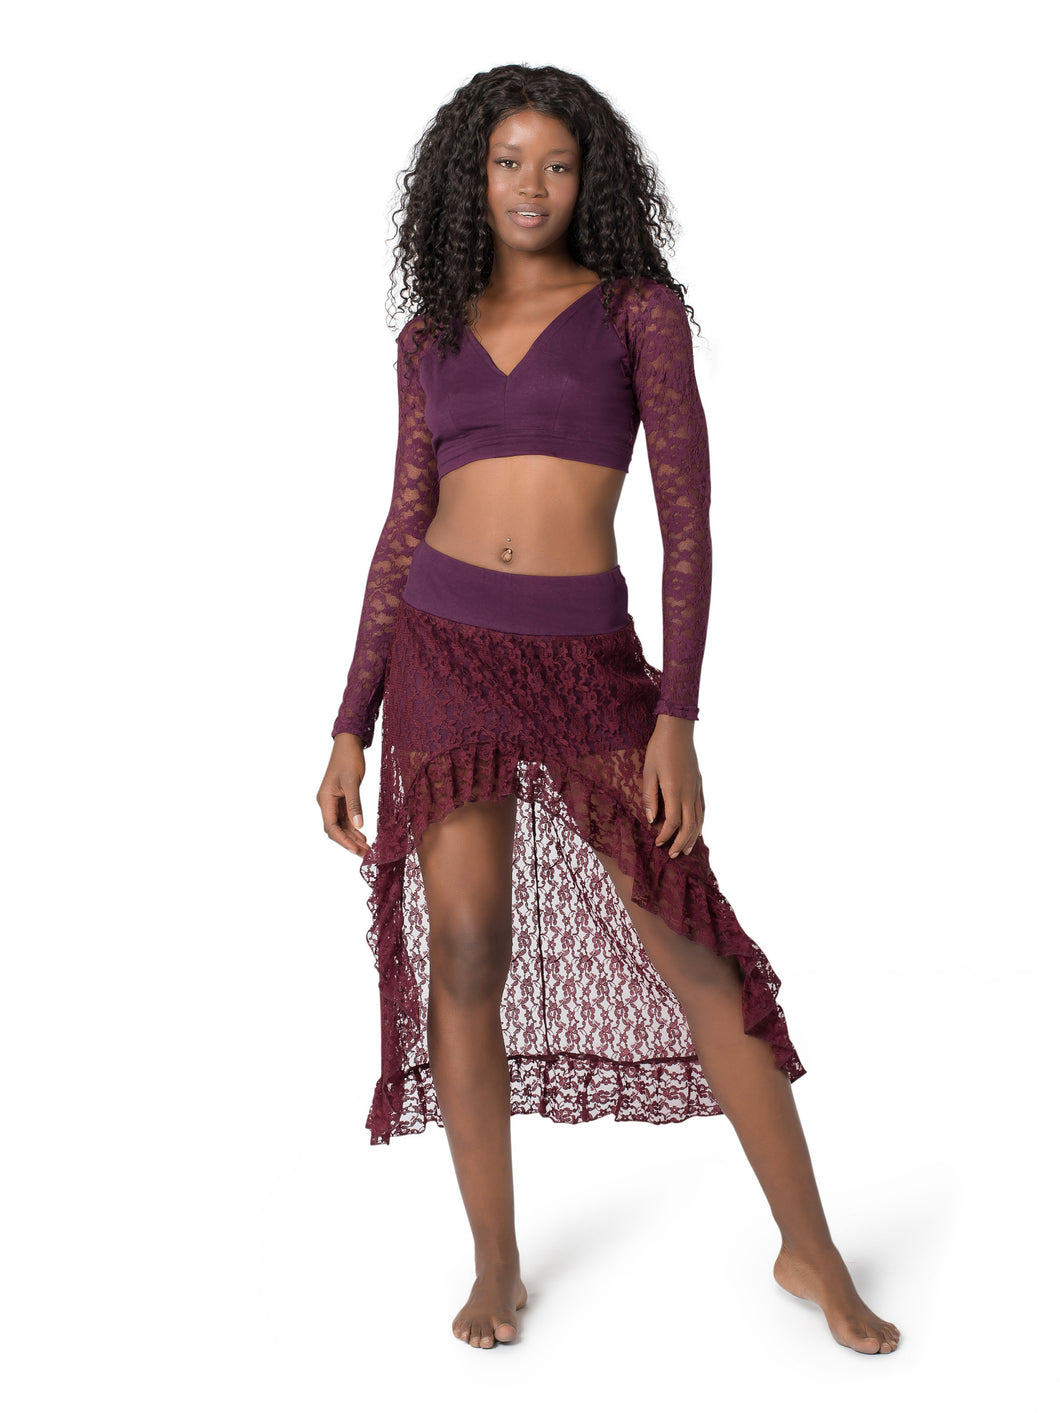 Unique Mini Maxi Asymmetrical Lace Skirt for Women | Gypsystyle Clothing for Burning Man Festivals, Tribal Fusion Bellydance and Salsa